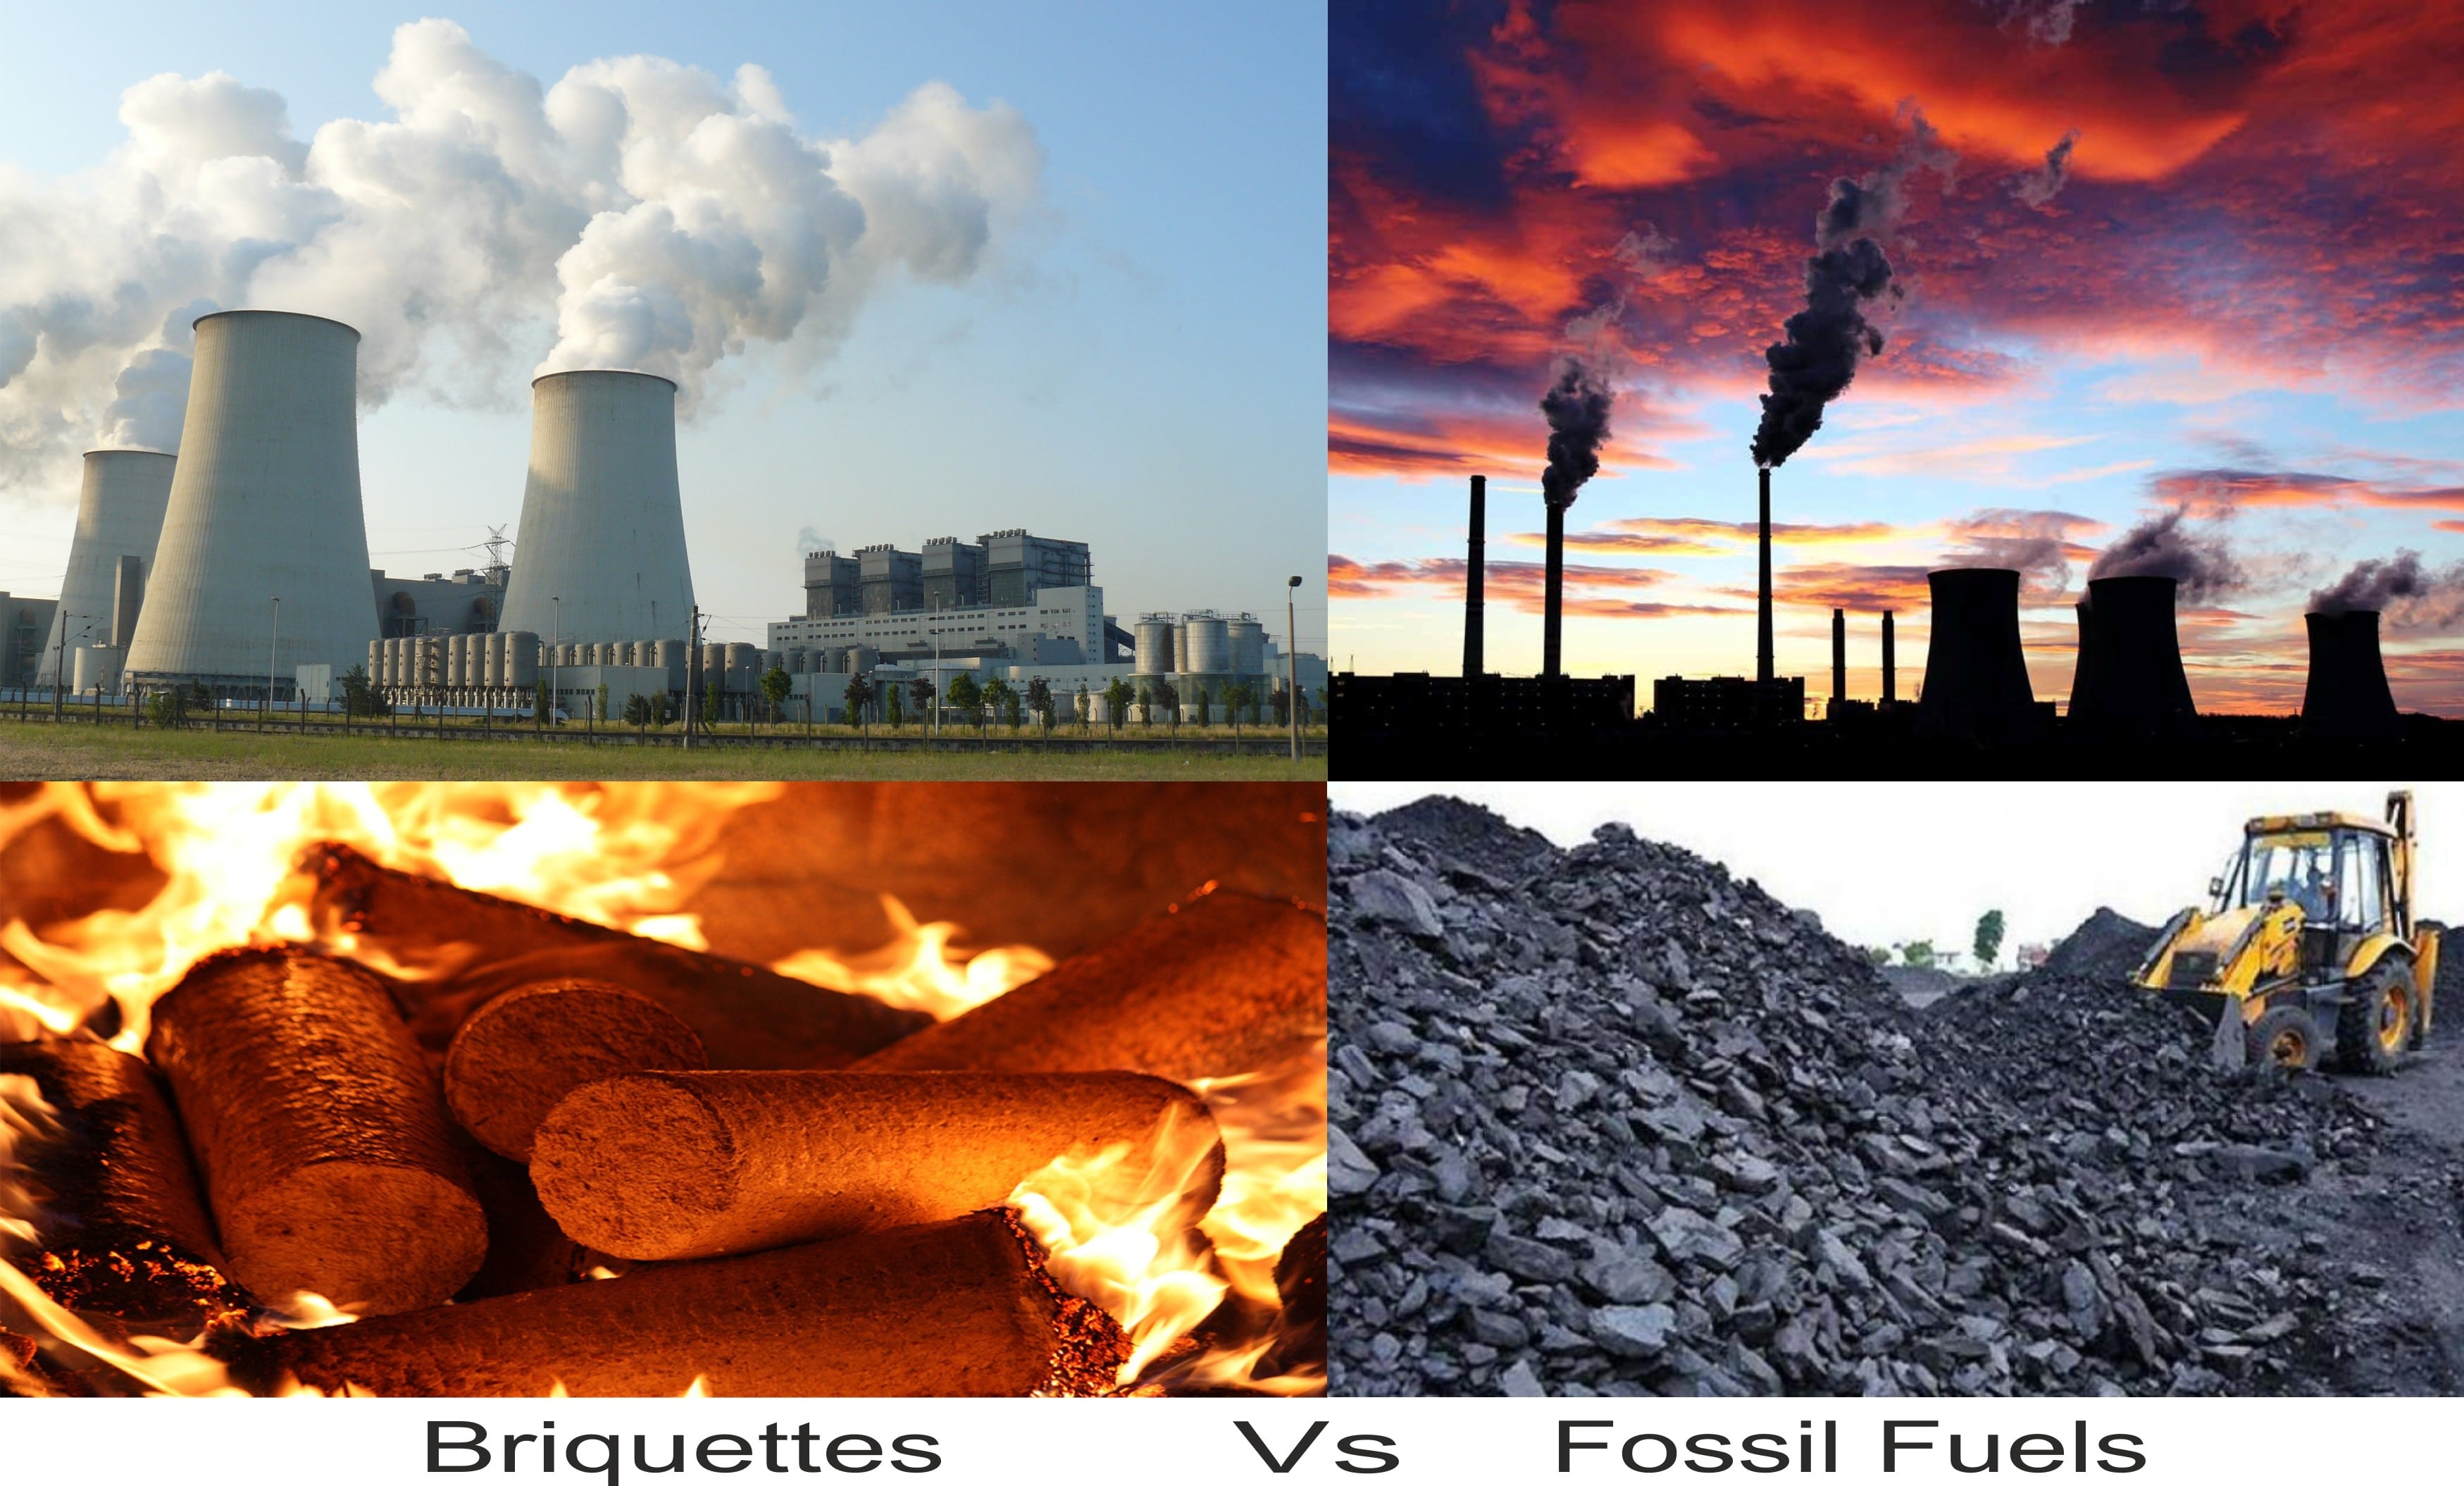 Briquettes with Fossil Fuels